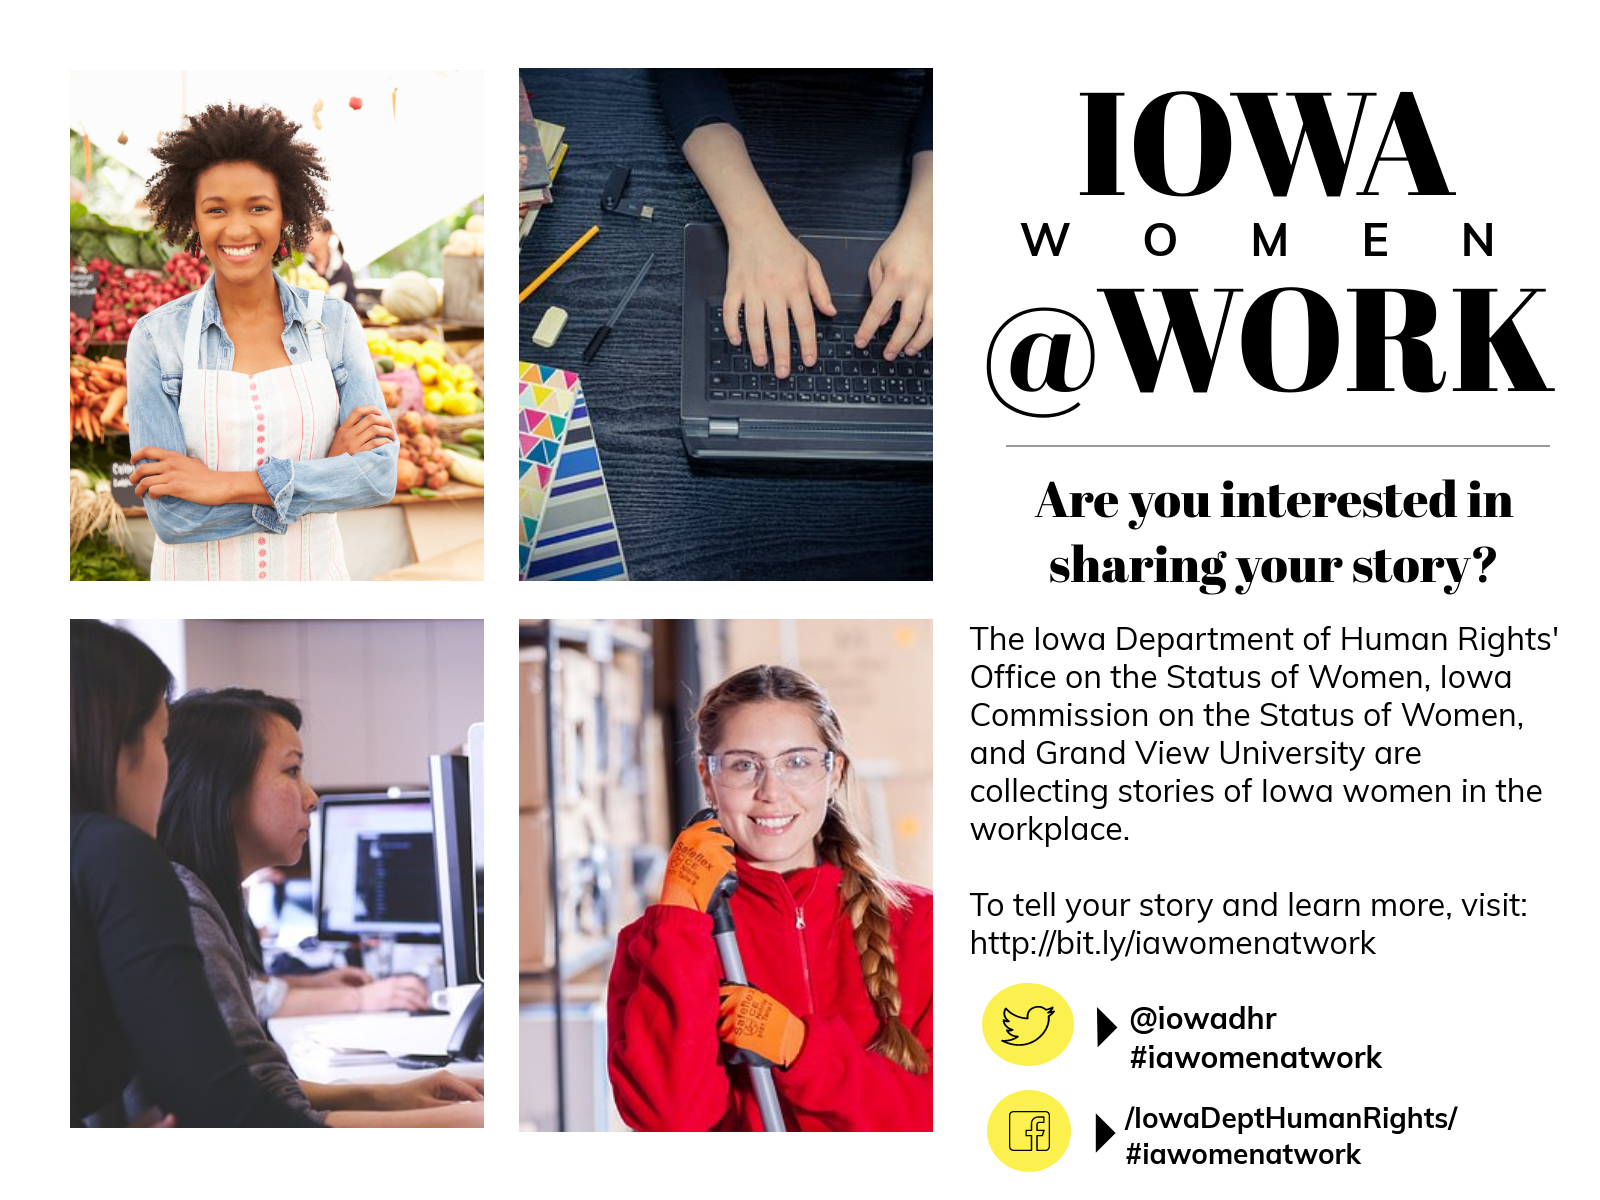 Iowa Women at Work Do you have a story to share?